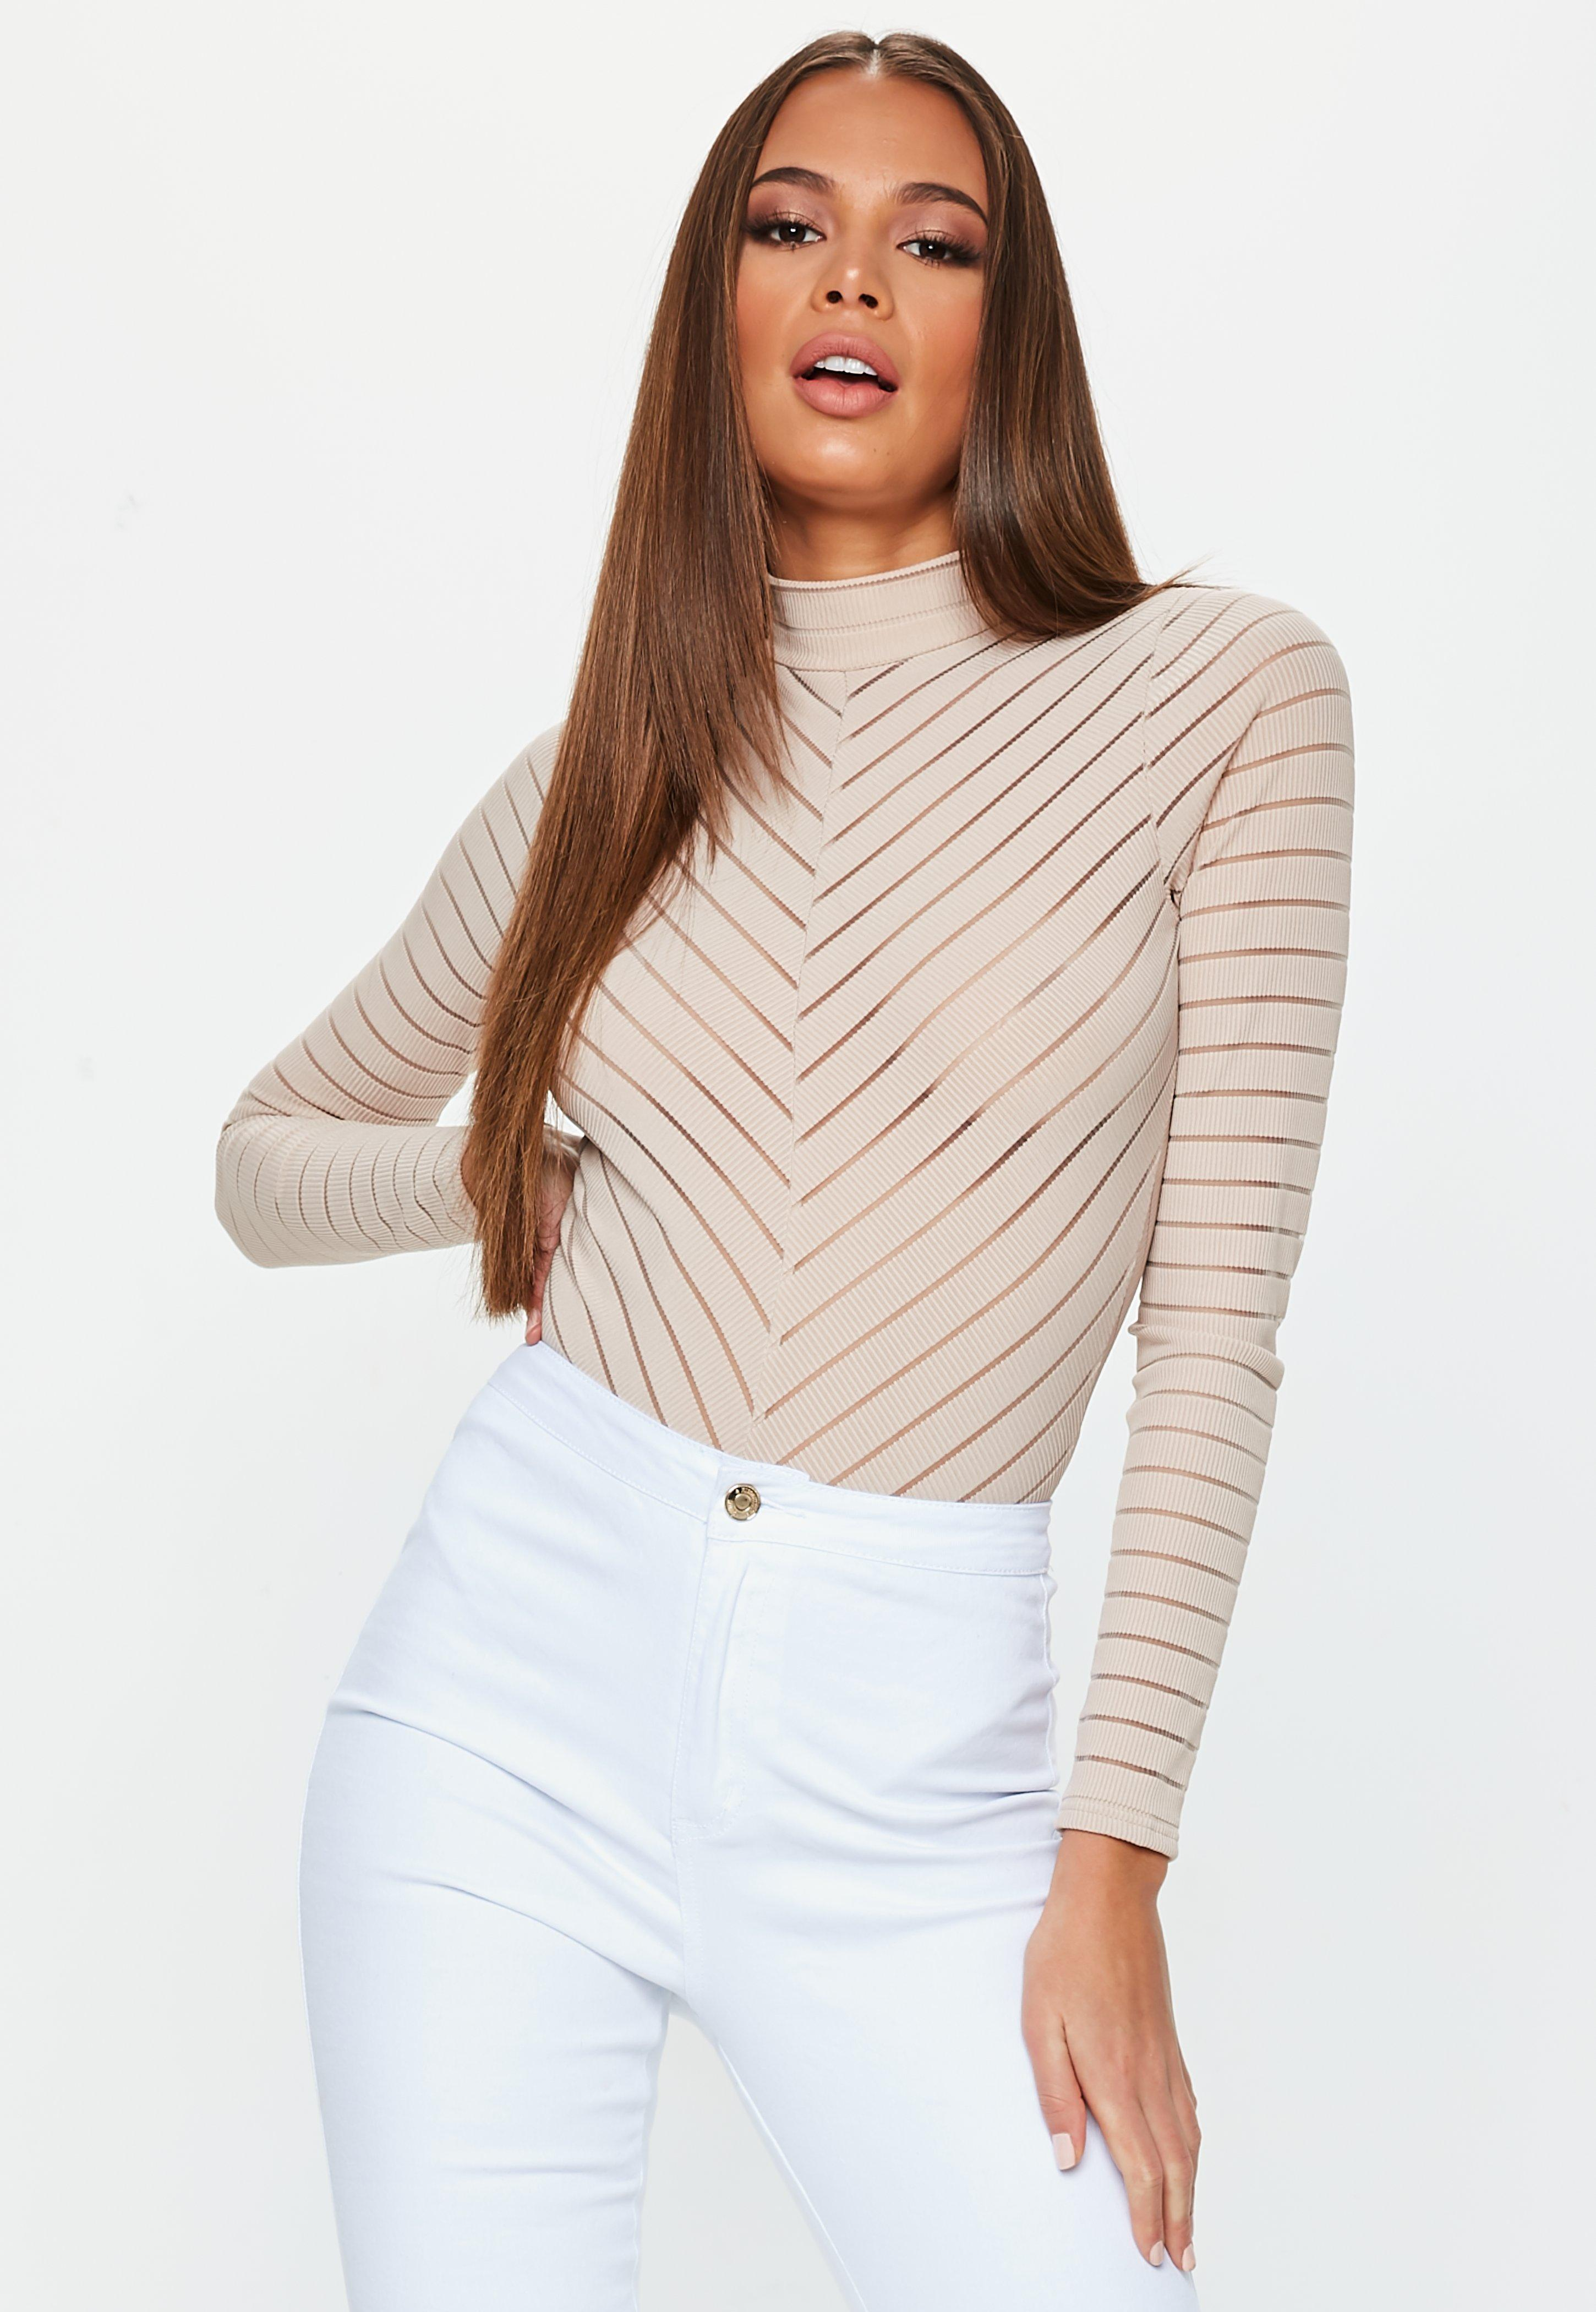 Missguided Nude Long Sleeve Chevron Bodysuit in Natural - Lyst 2ef88cedc